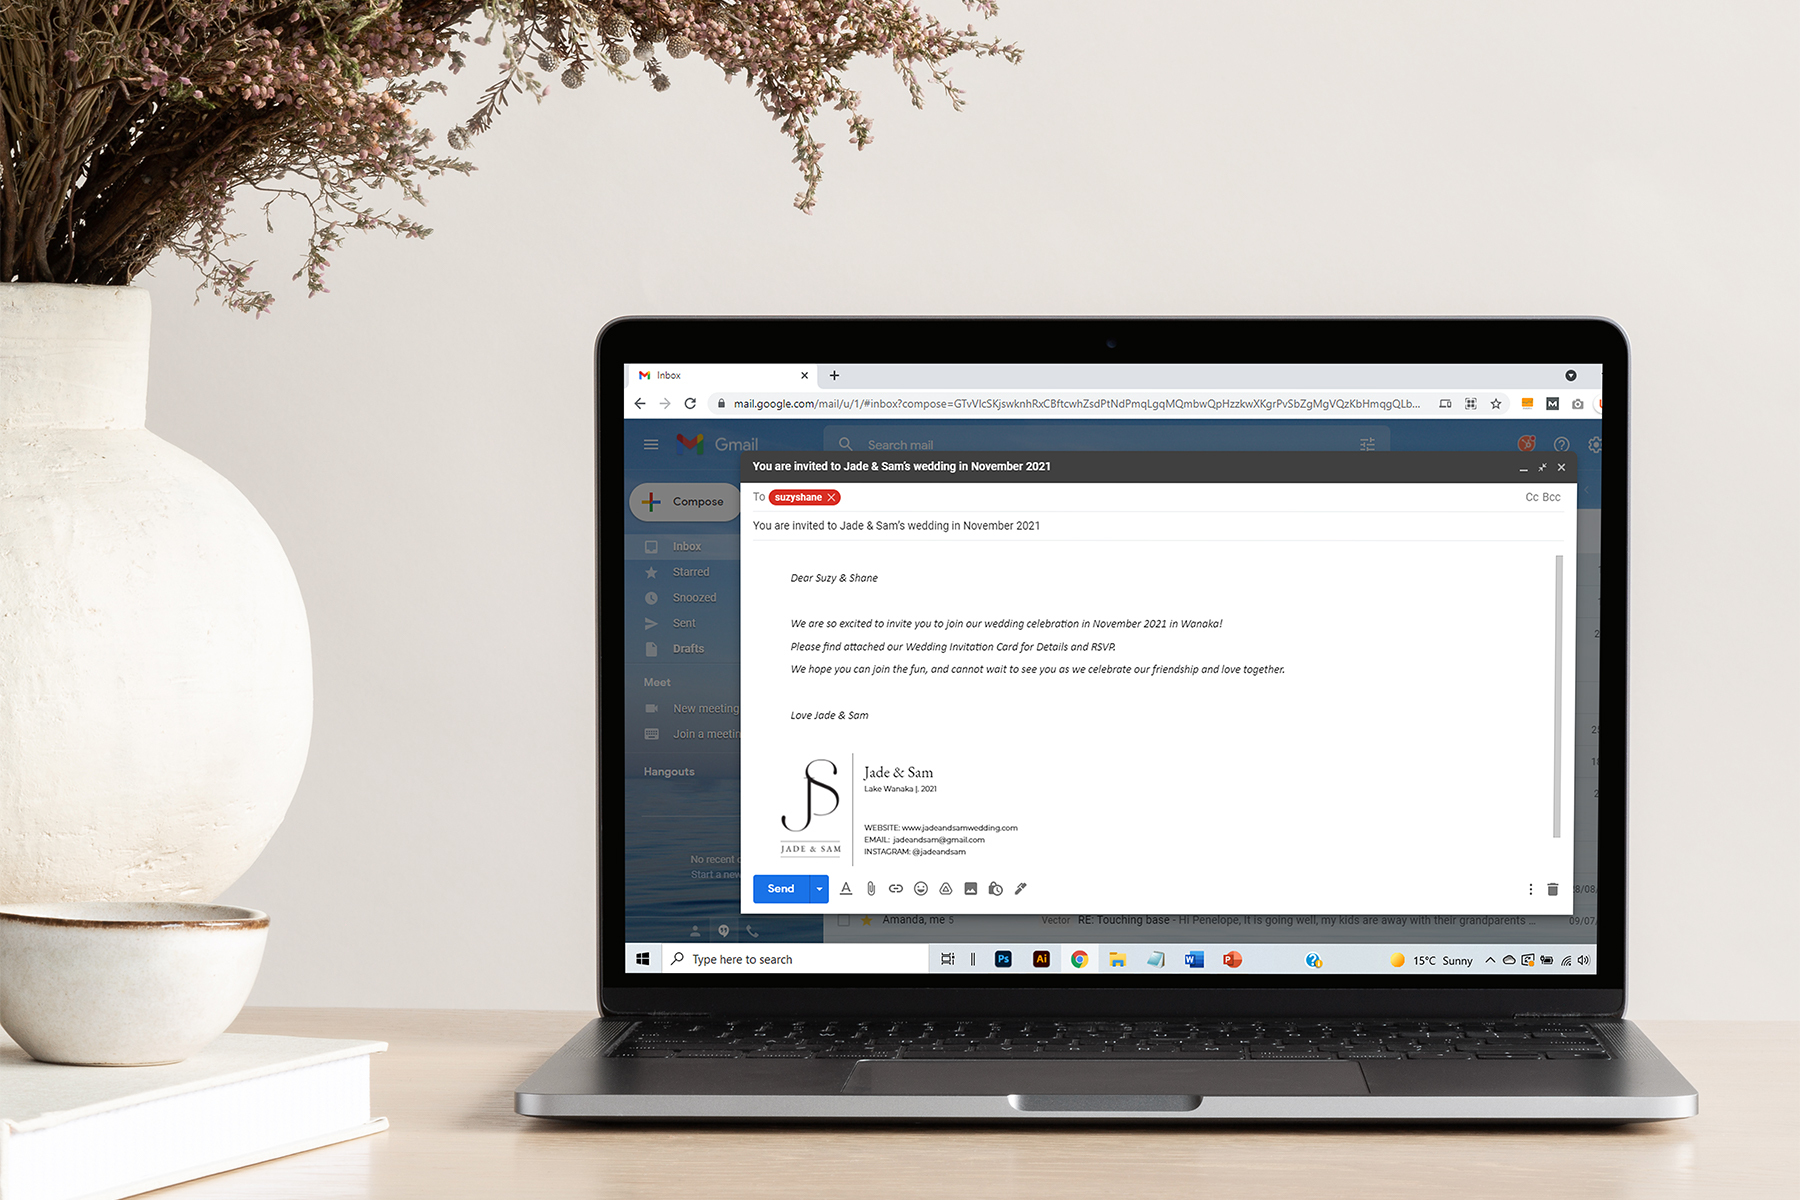 Laptop with email invite